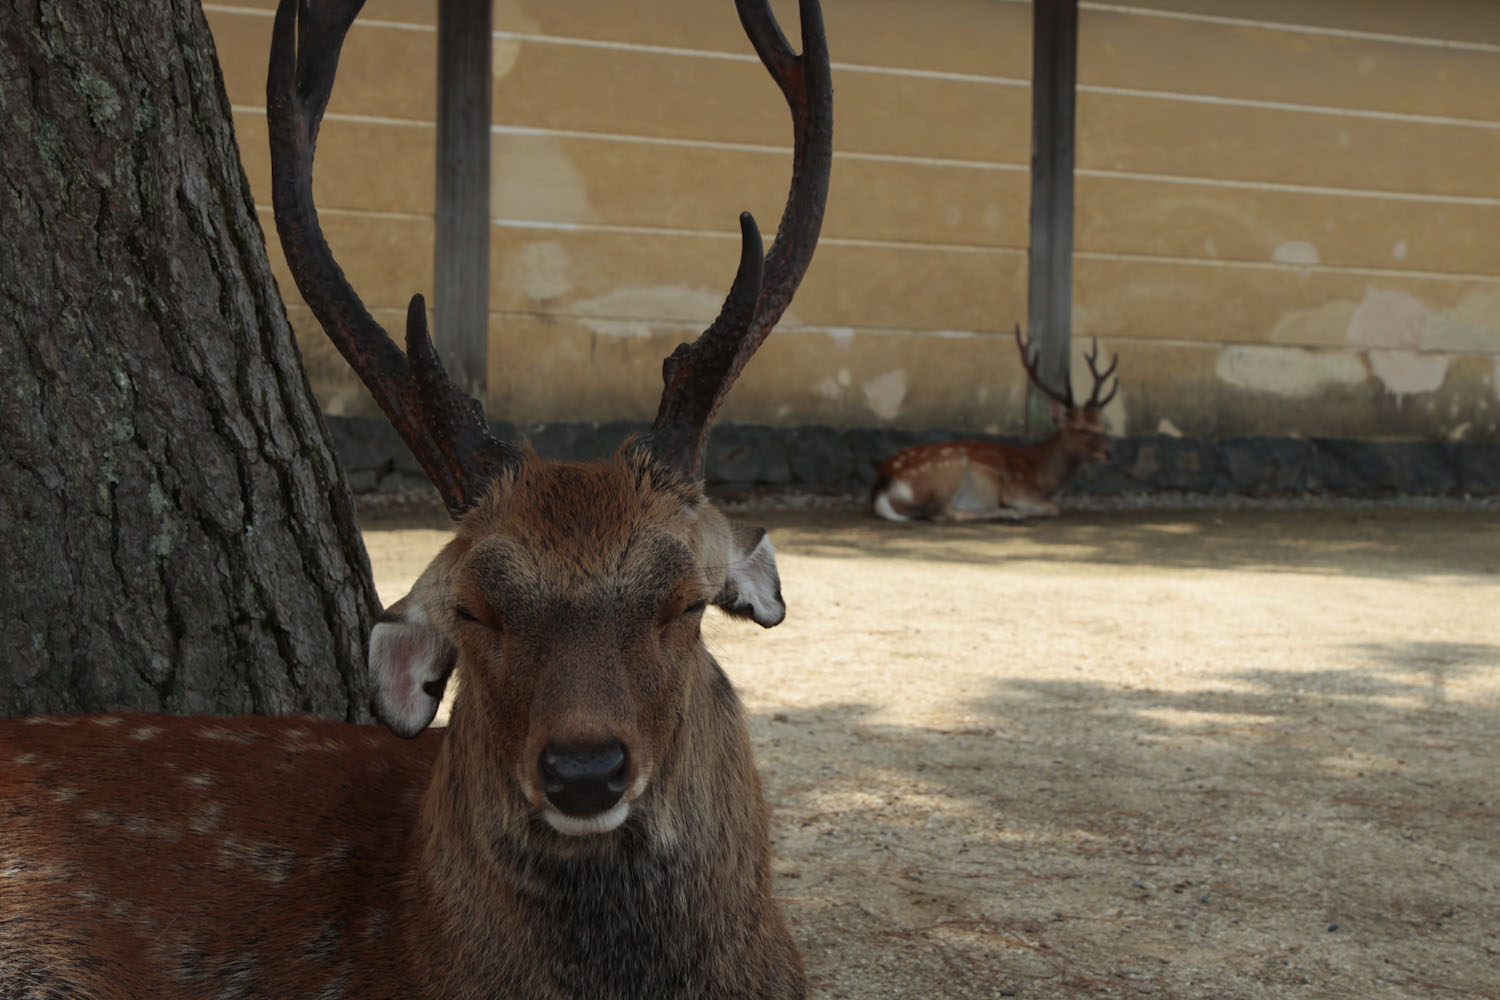 This is one of the famous deer that live among the temples and shrines of Nara. If you feed the deer, they chase after you. I do not believe there is an elegant way to do this.